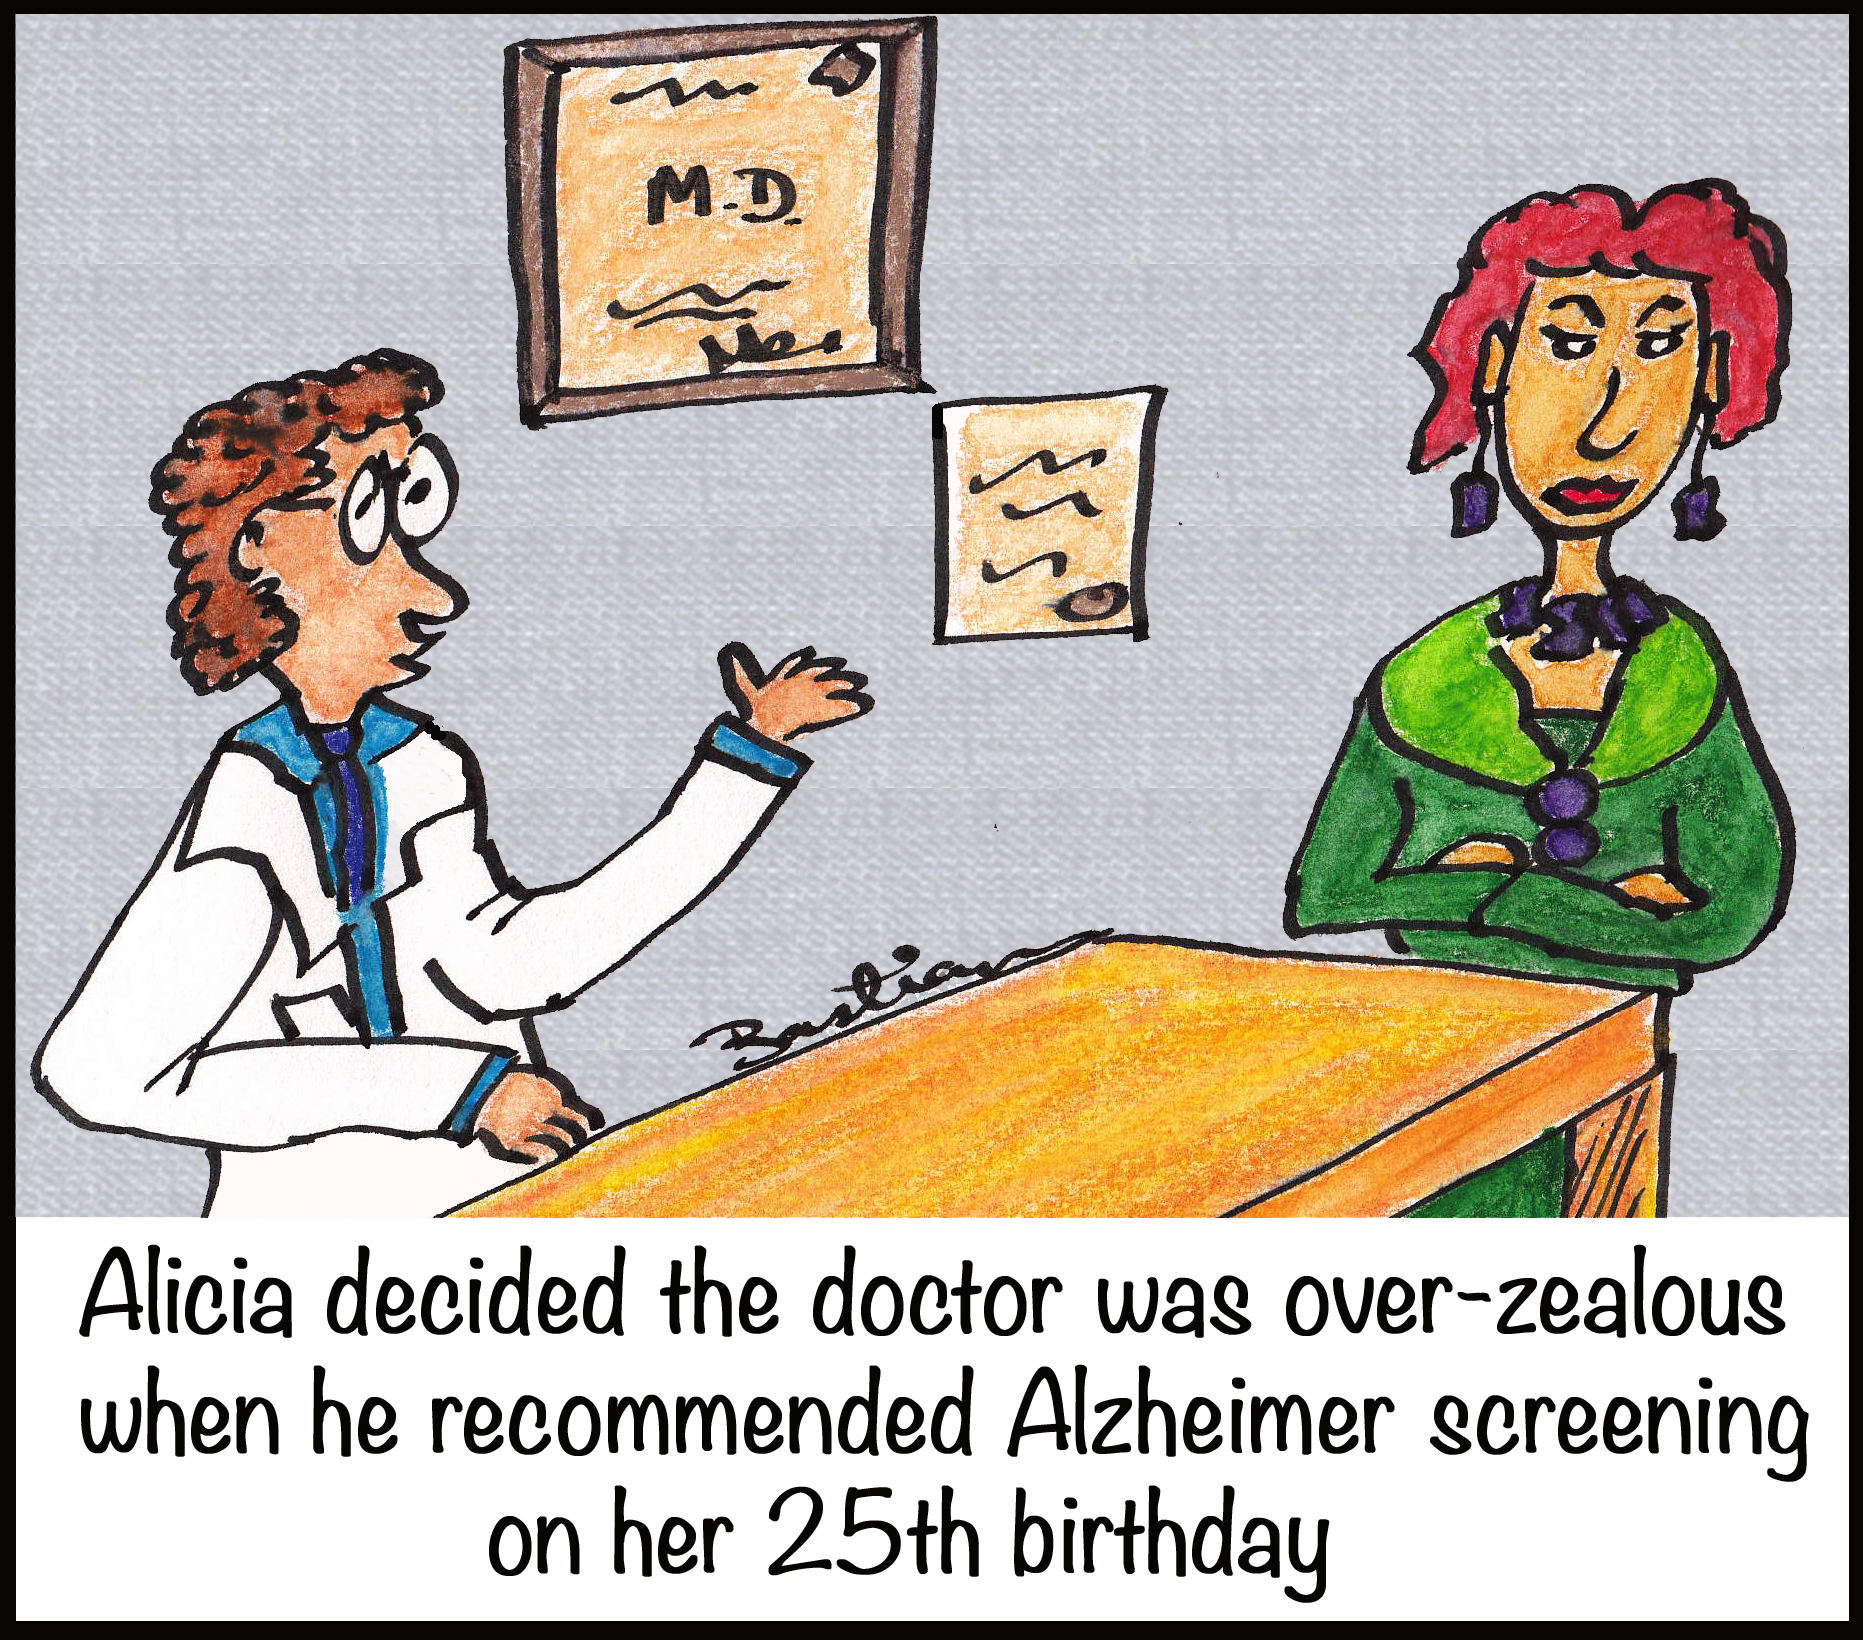 Cartoon of Alicia and doctor